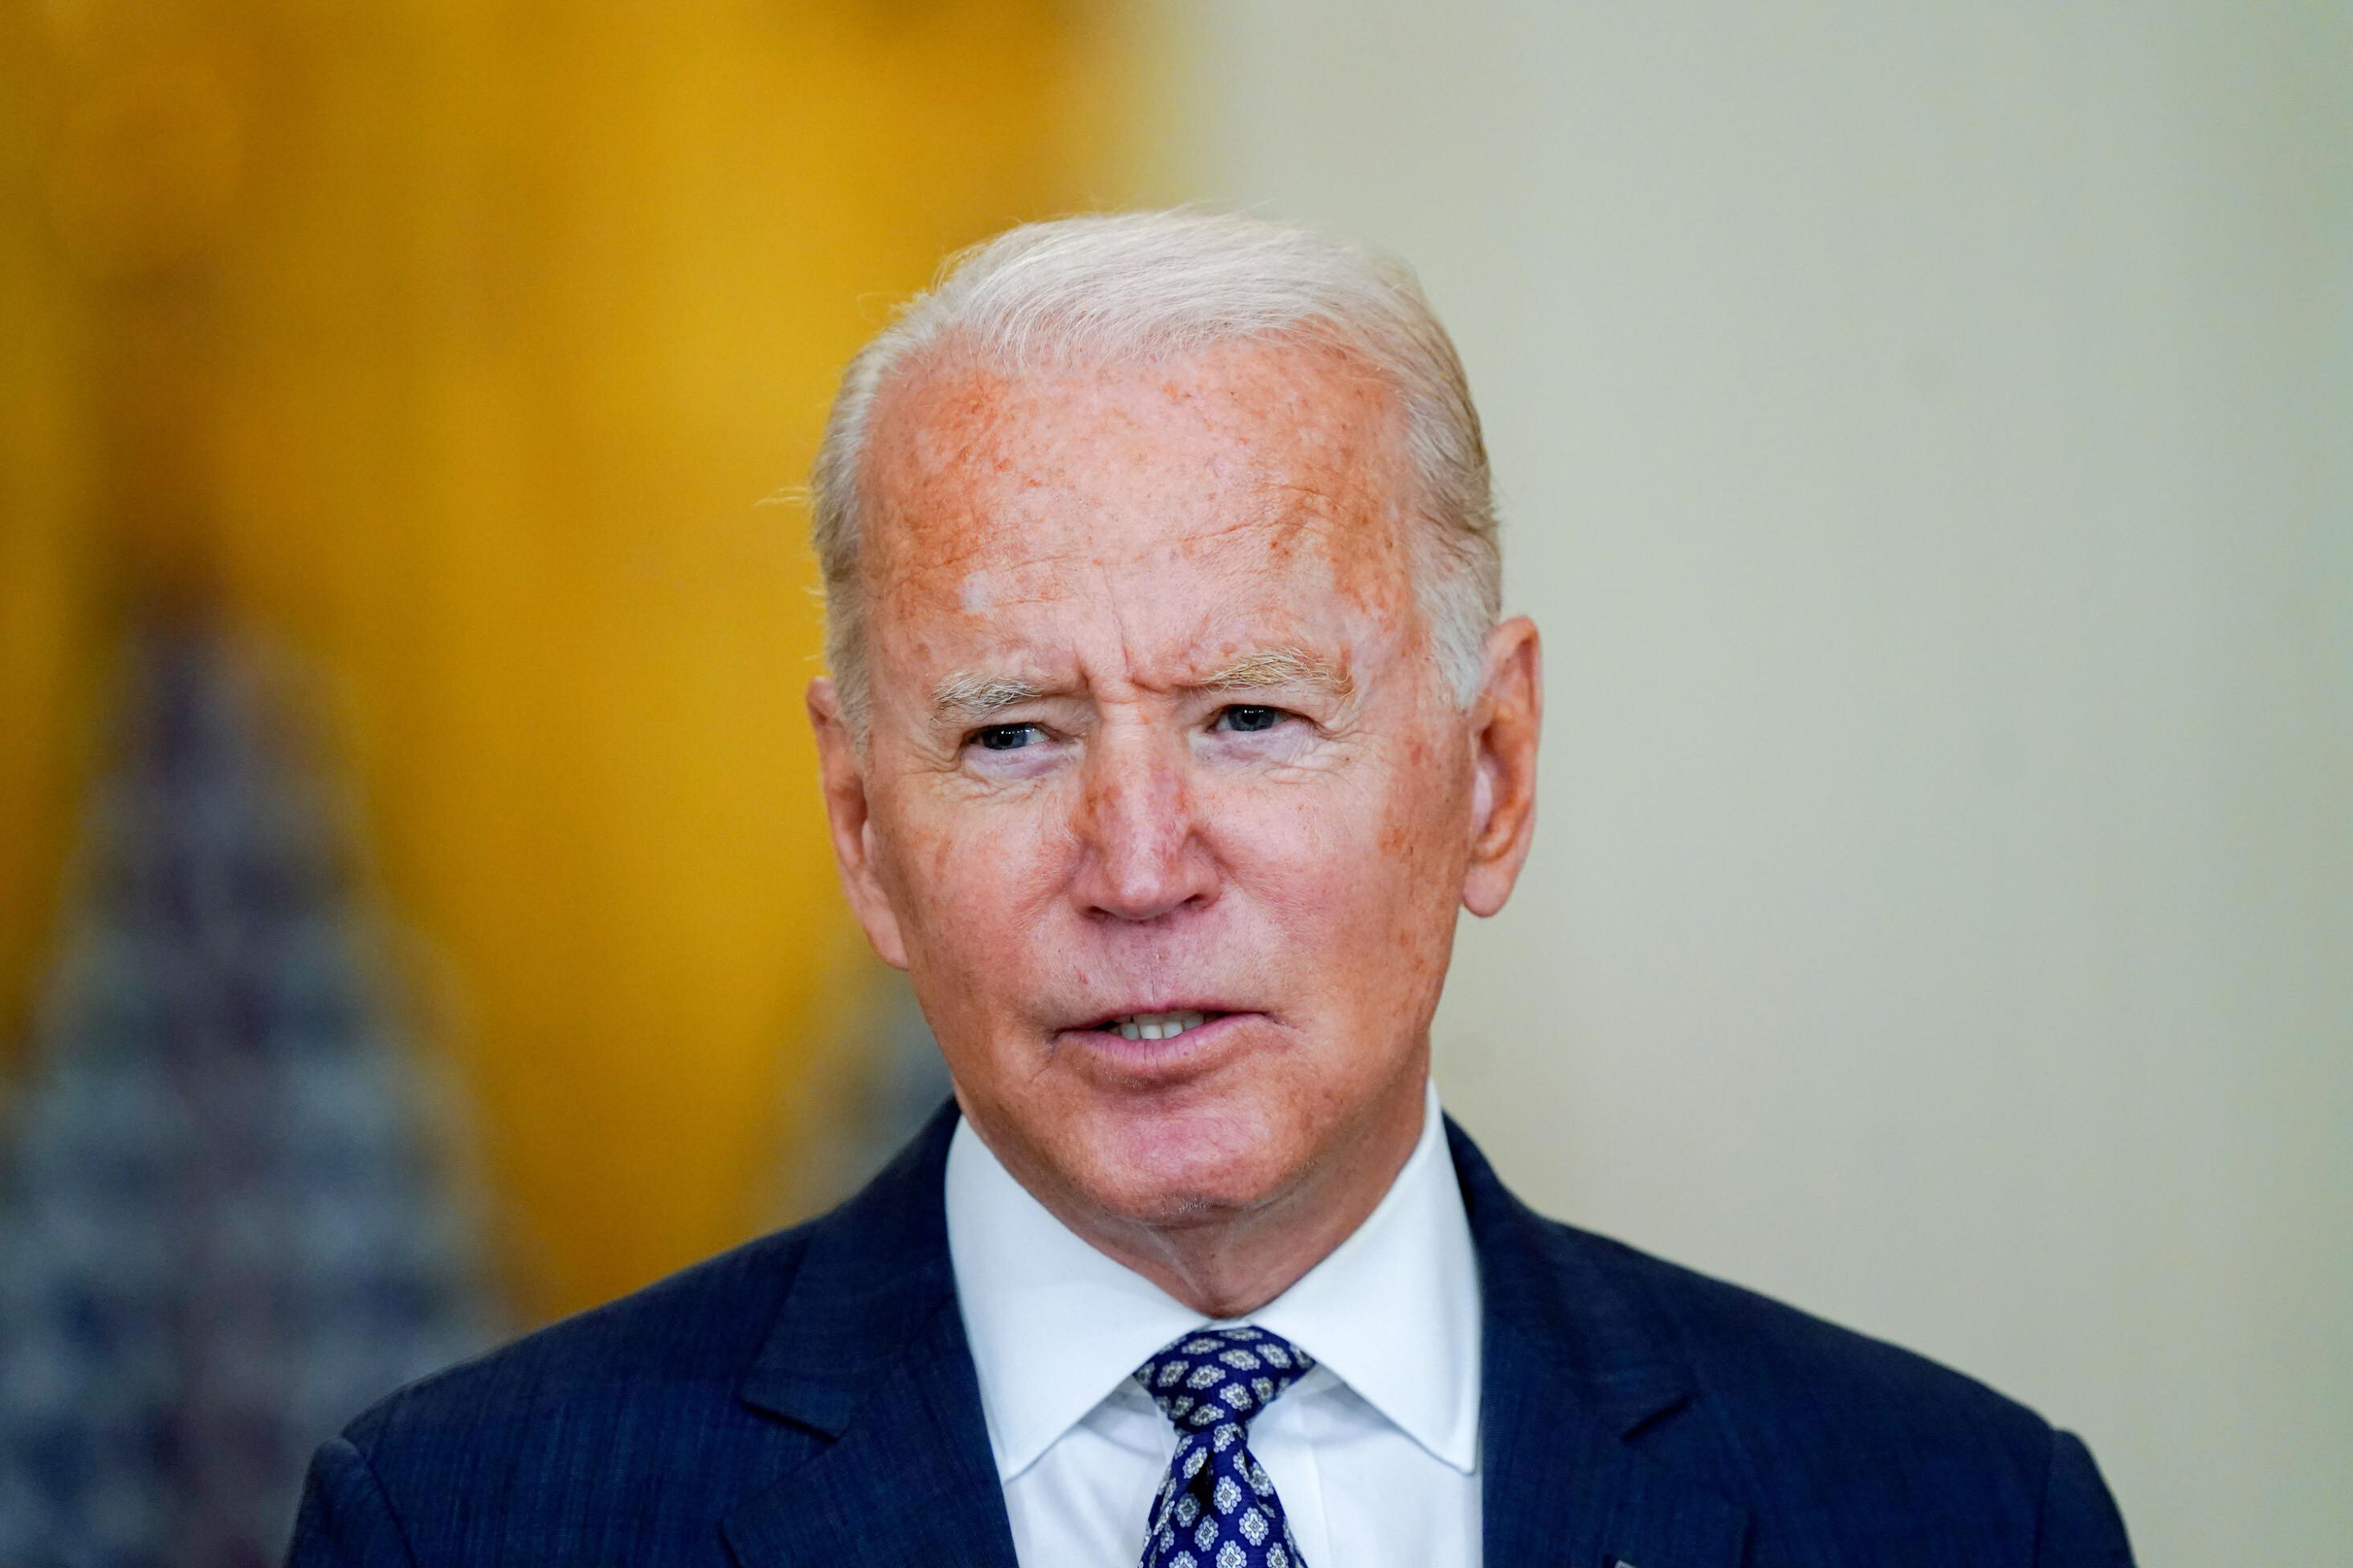 Biden encourages Americans who have been waiting for full FDA approval to get their Covid vaccination: 'Get it today'